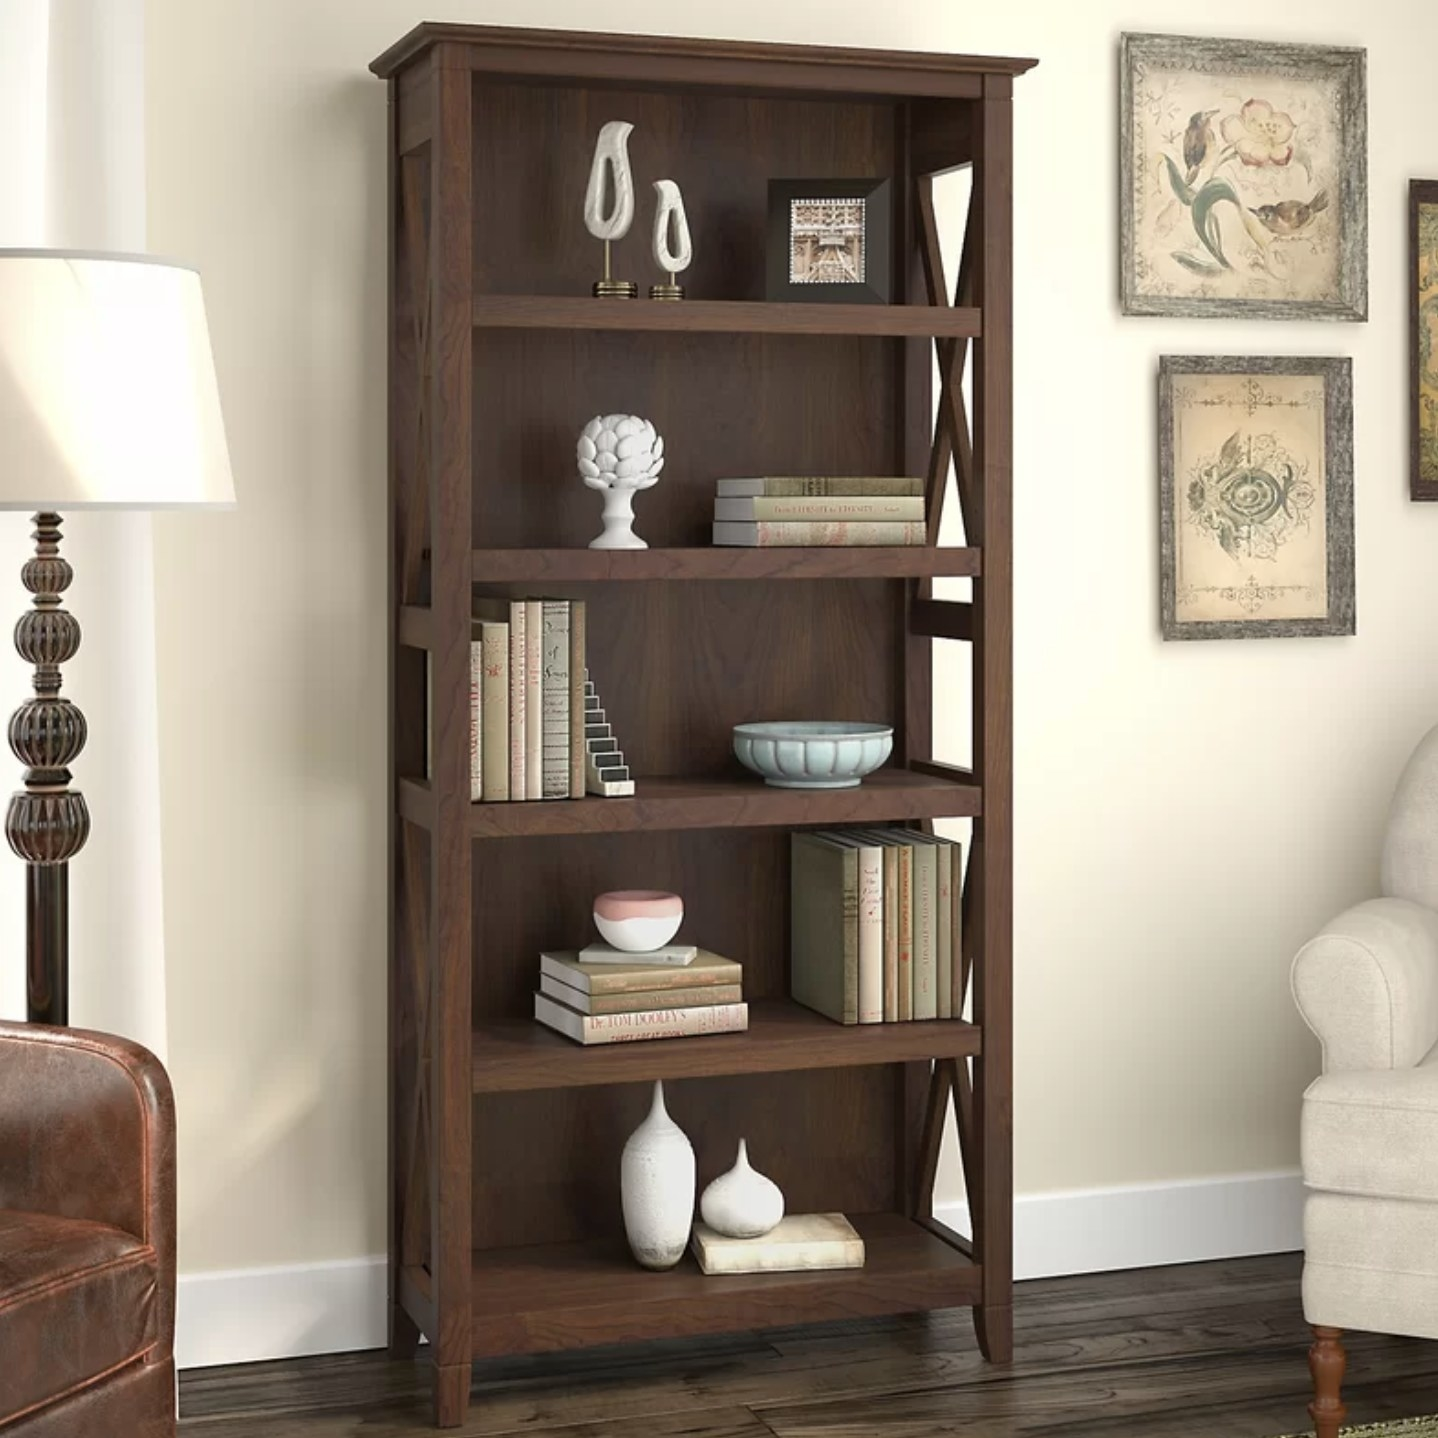 The bookshelf in a dark wood color